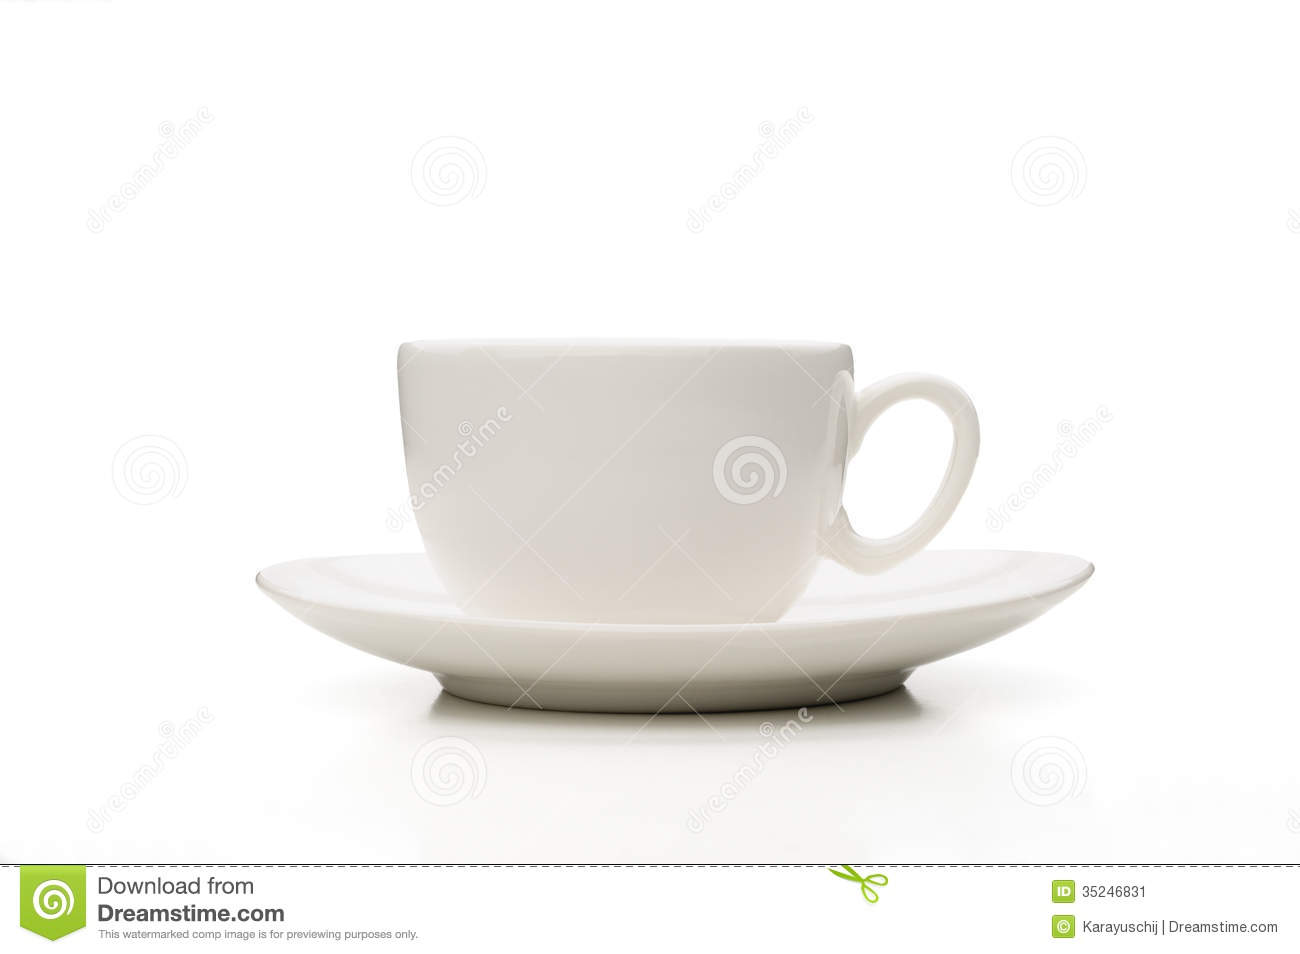 White Porcelain Coffee Cup Stock Image Image 35246831